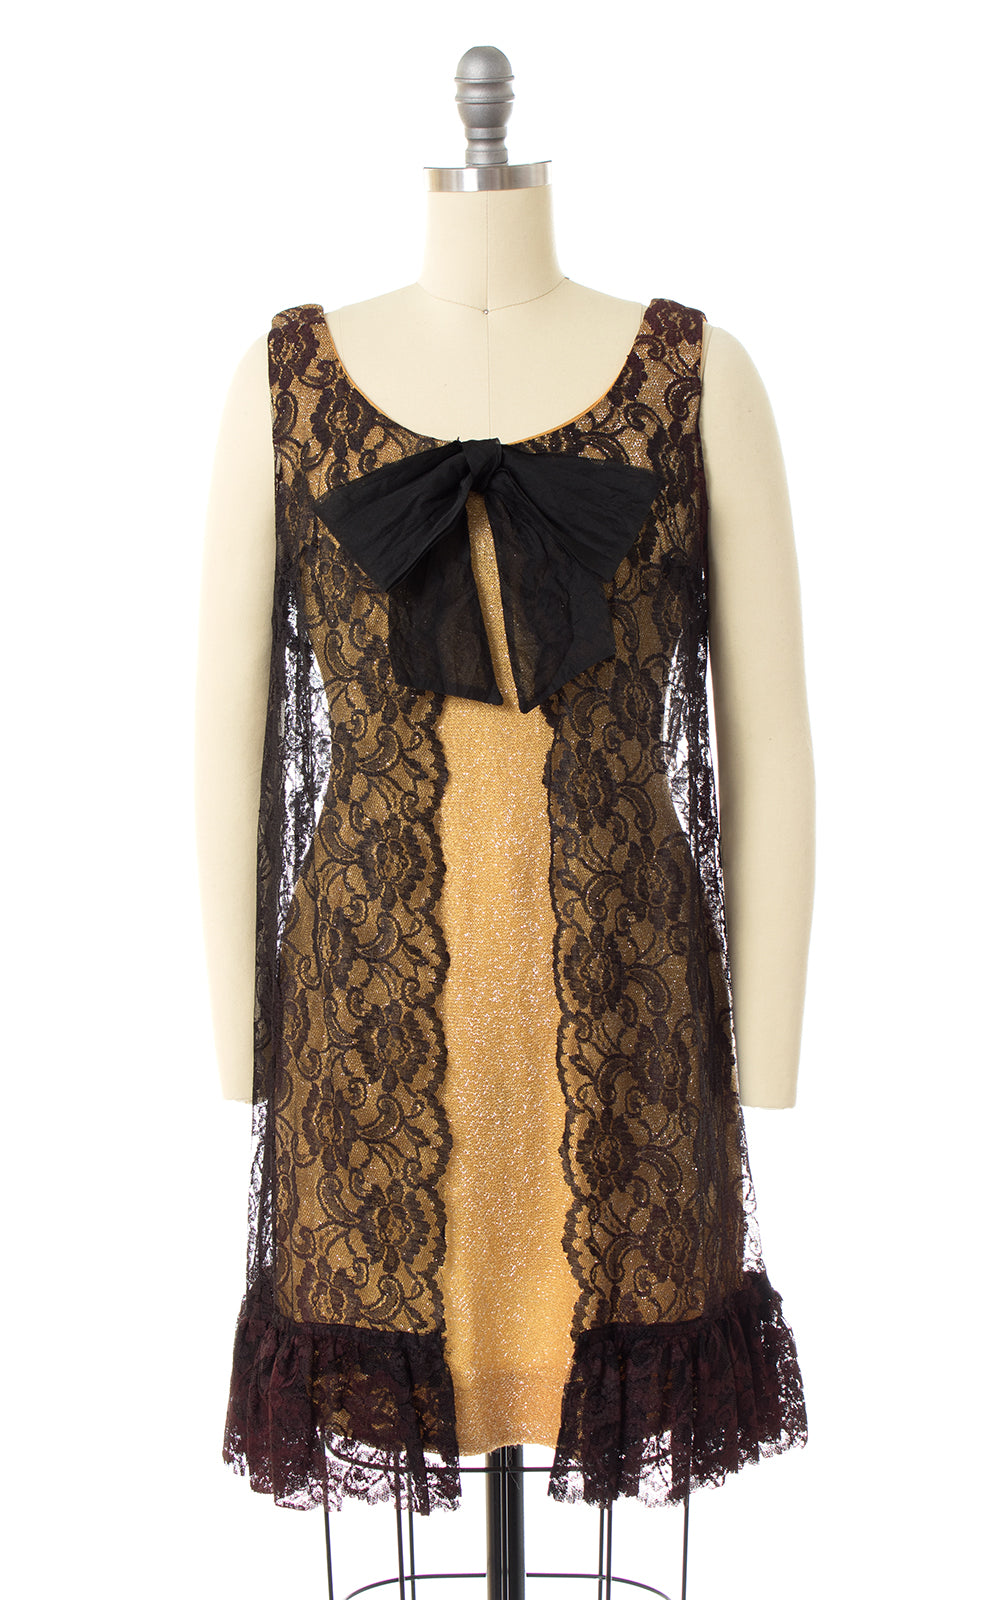 1960s Metallic Gold & Lace Party Dress